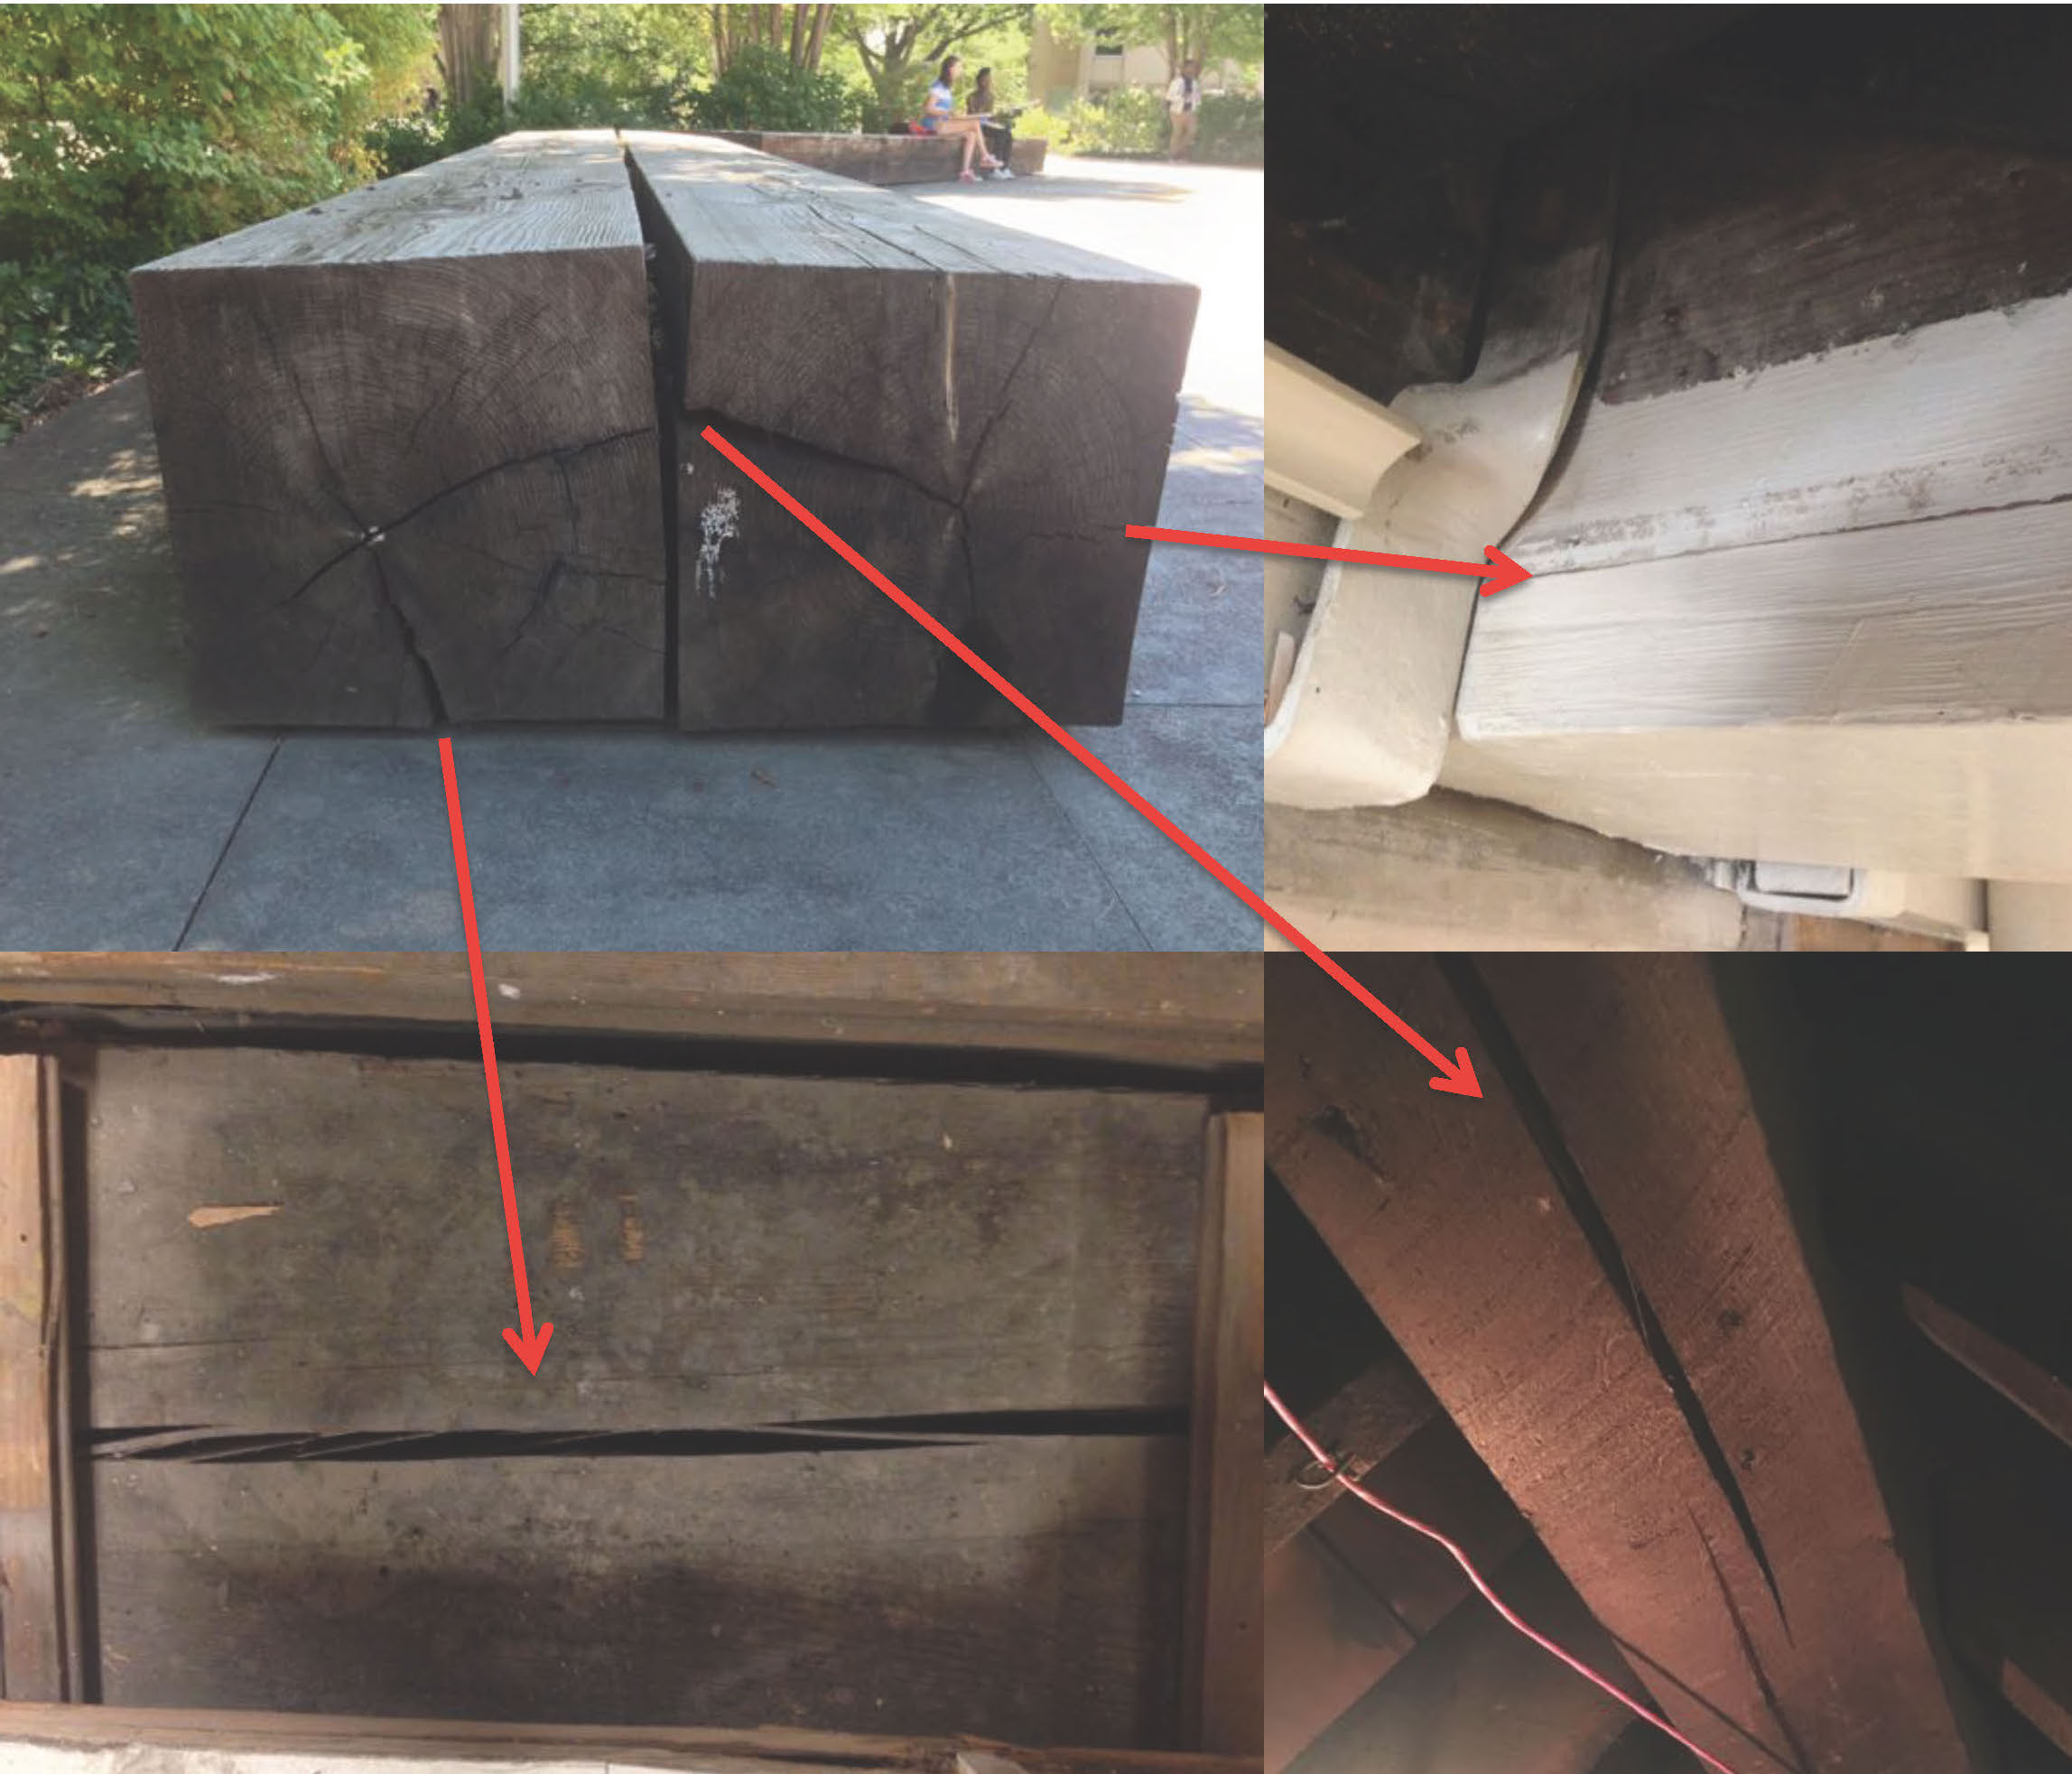 Upper left image shows two large timber benches with visible splits on both ends as a result of seasoning. These are considered normal. Each of the red arrows points to how the checks would look in-situ.